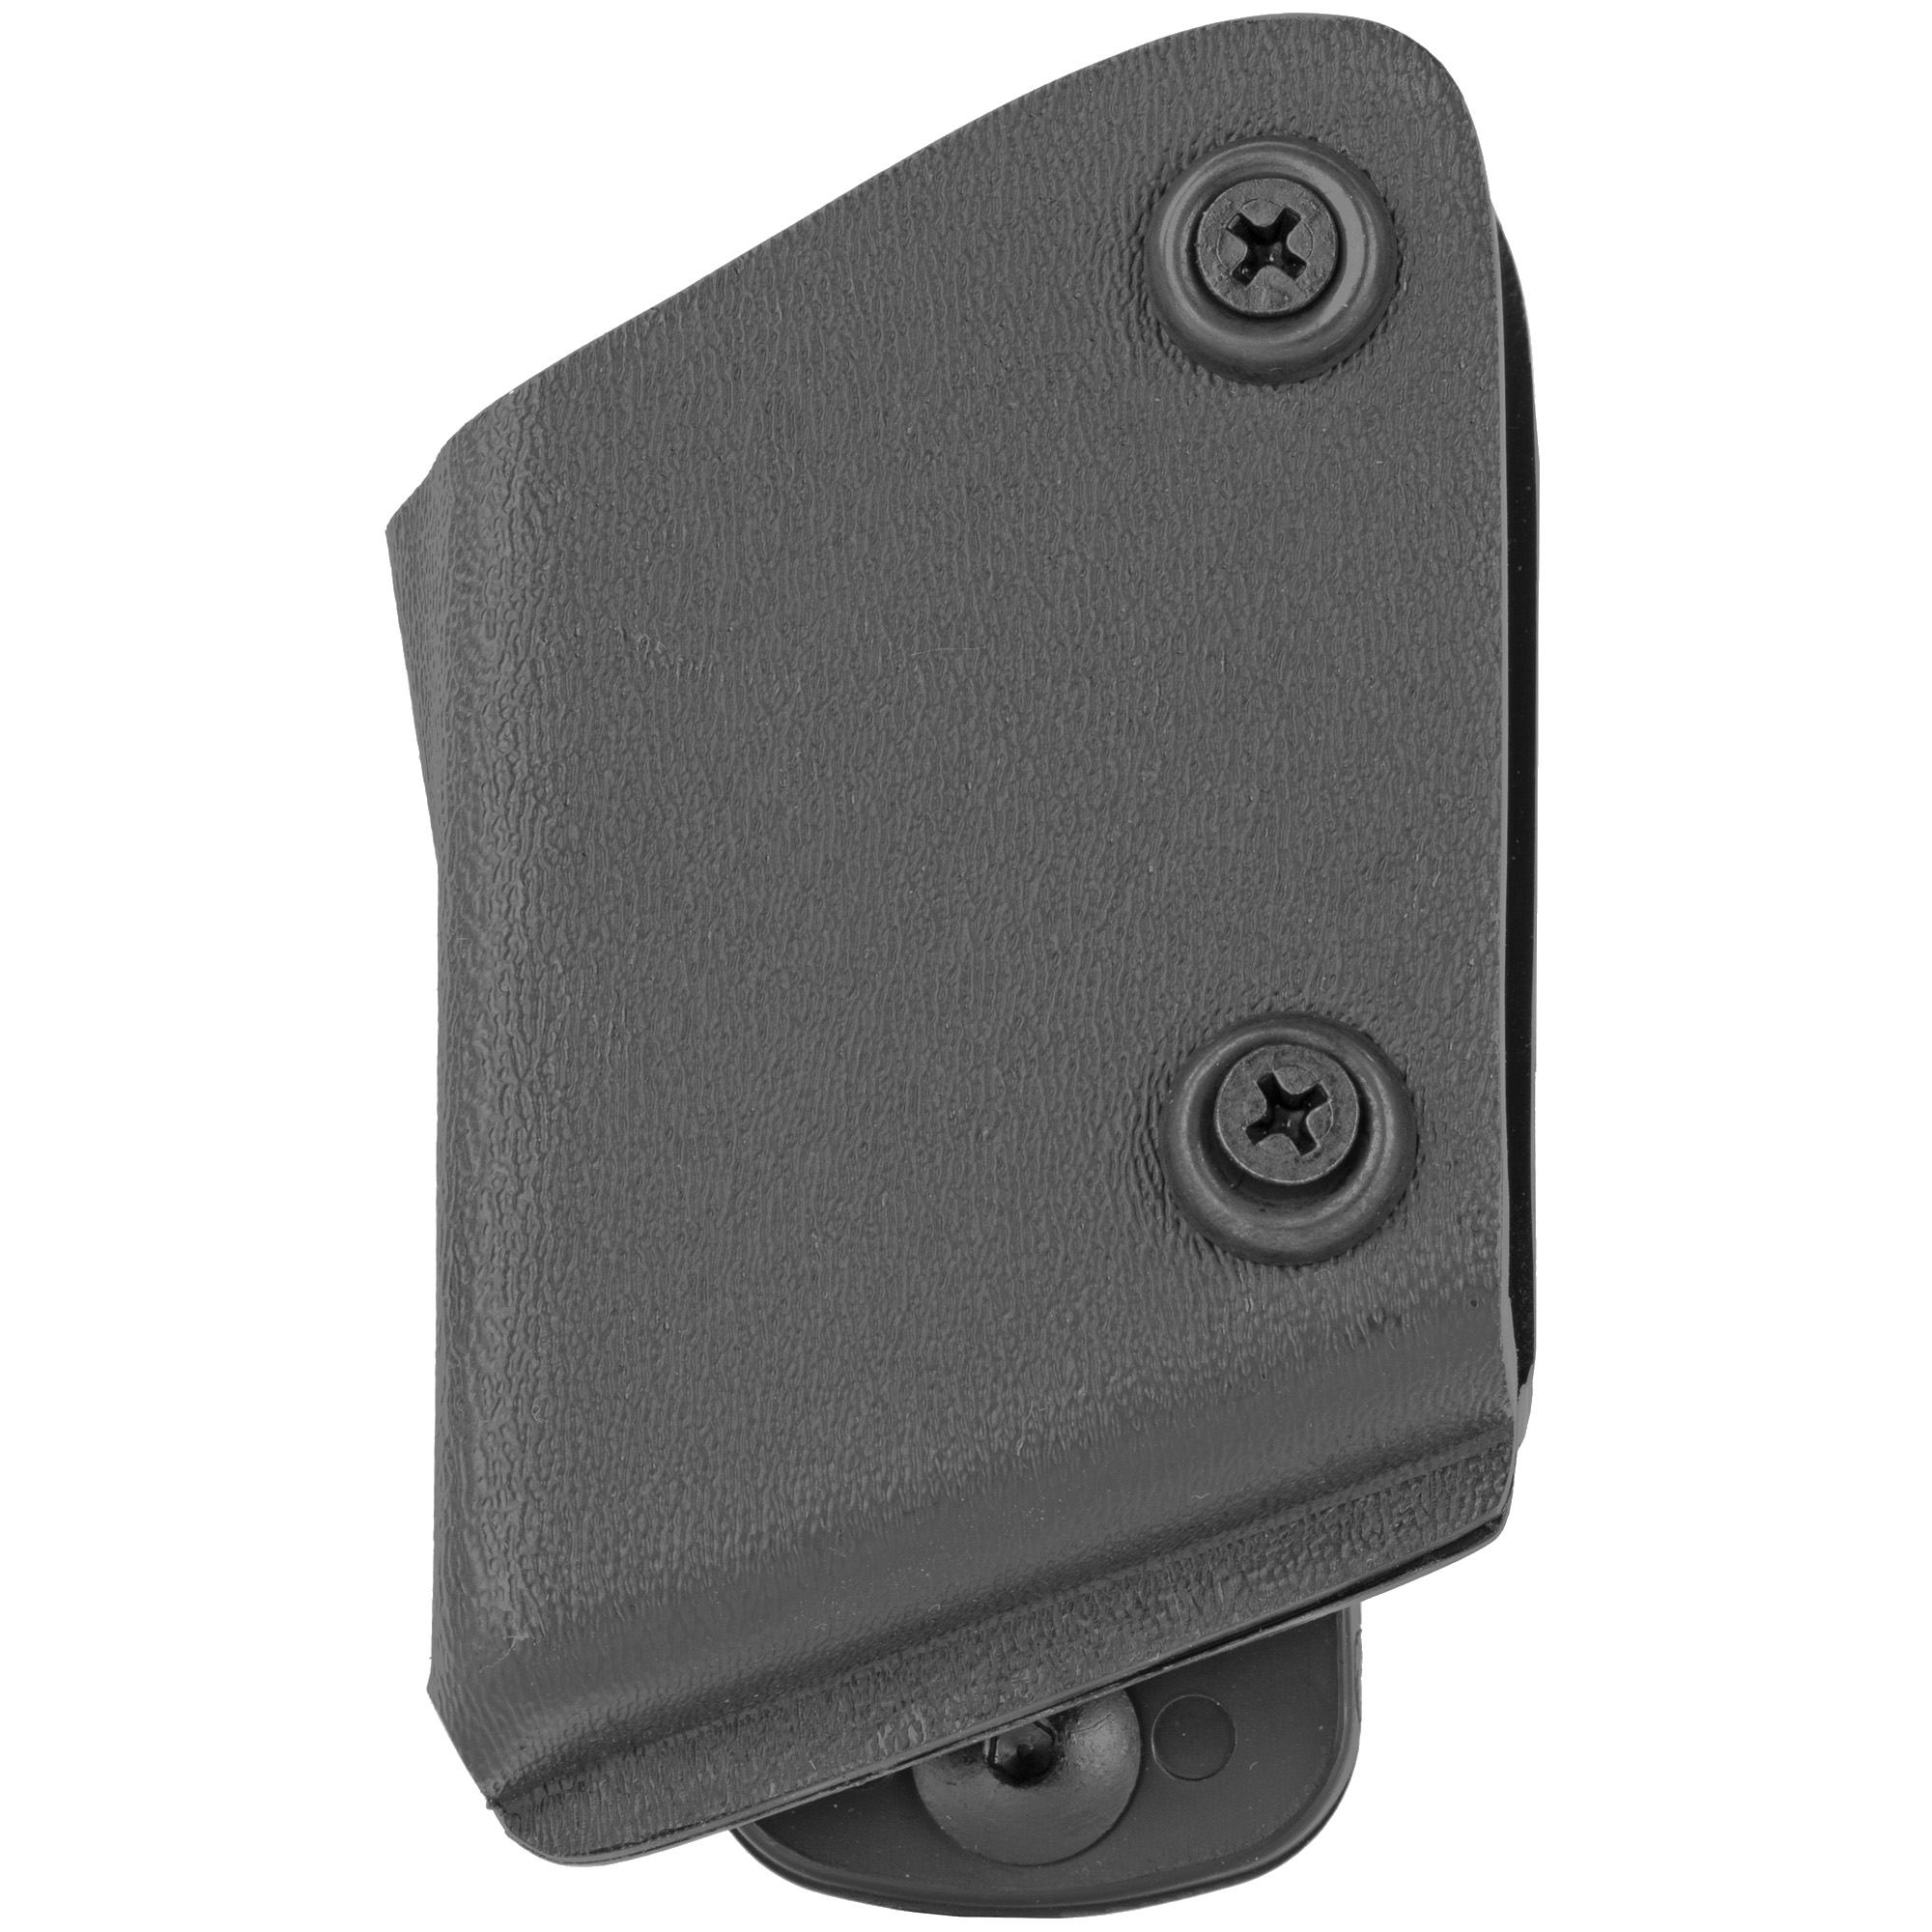 "The Model 773 Open Top Magazine Pouch is an innovative competition pouch design. It utilizes the same adjustable belt loop and rollers as the 771 but has a closed-in front area of the pouch so that it helps retain the magazine. The 773 is adjustable to any angle within a 90 degree range and the belt loop size is 1.5""."